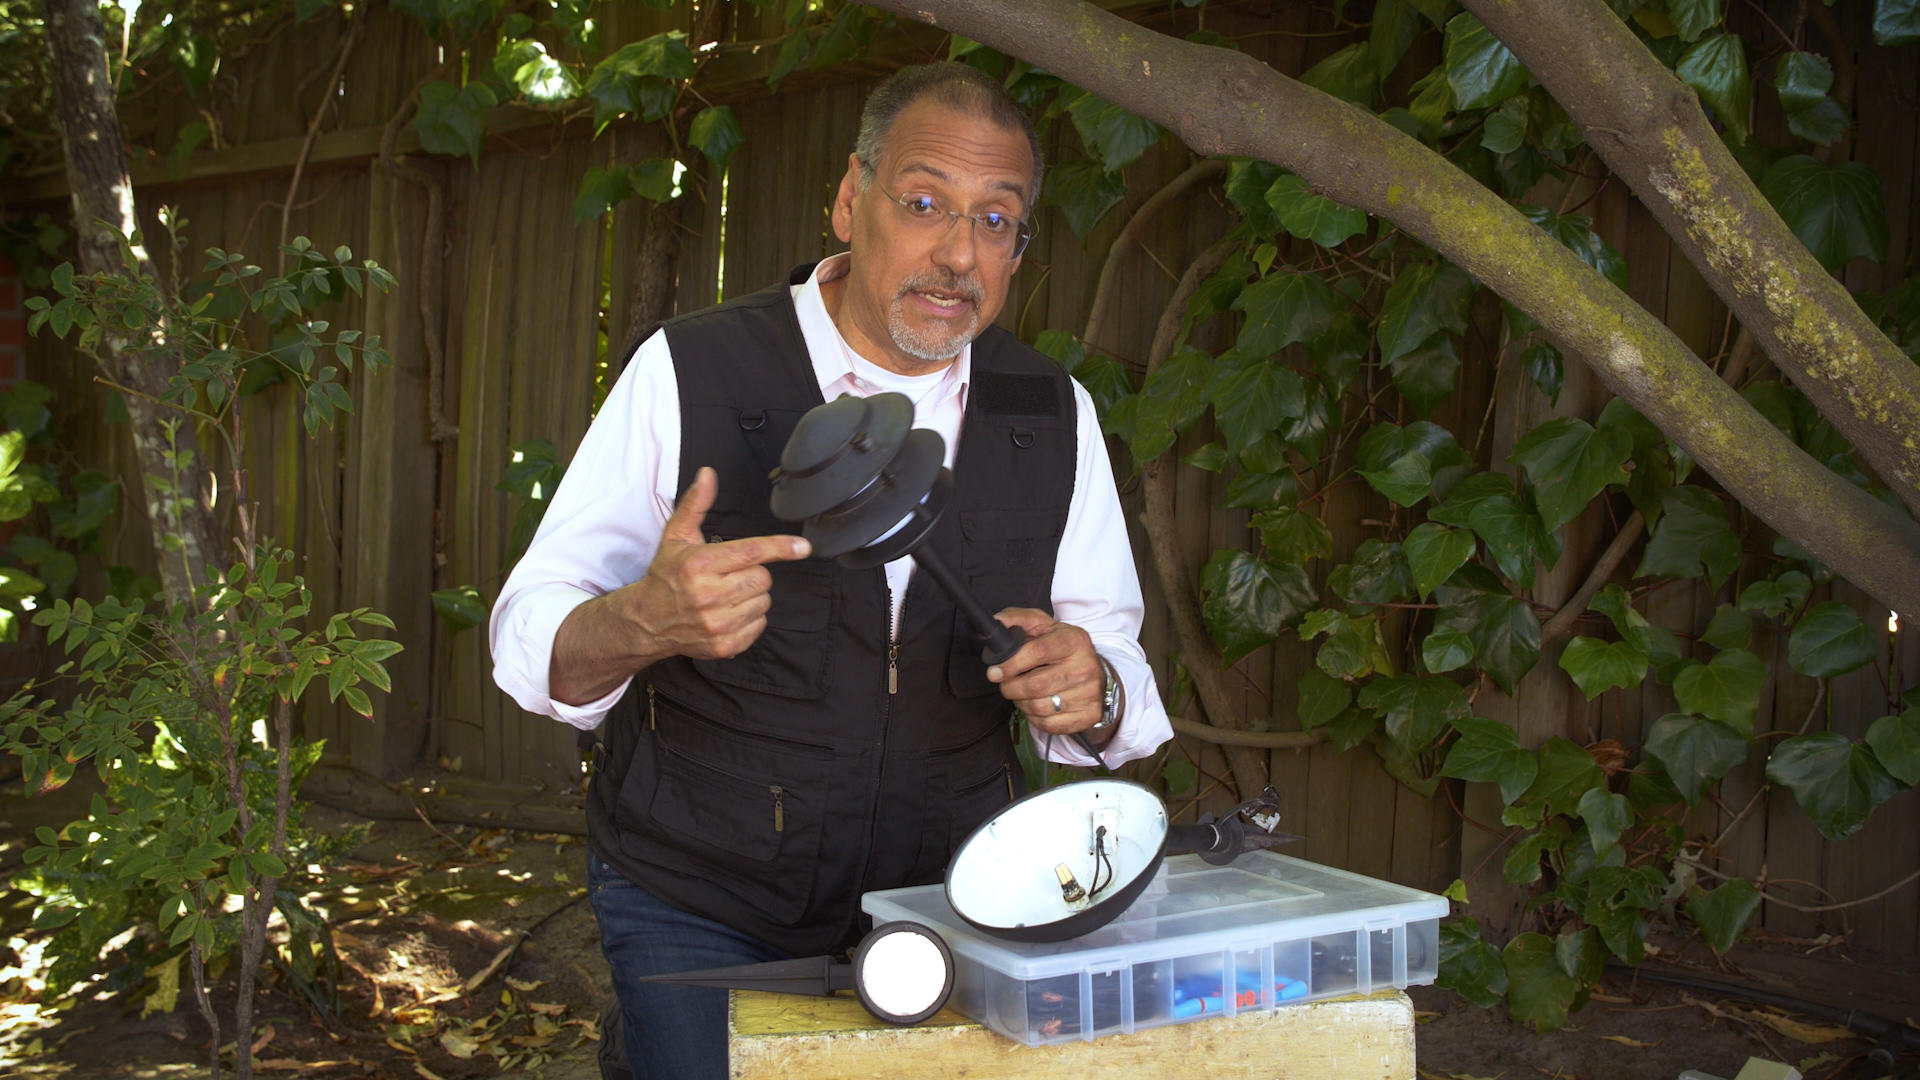 Video: See how easy it is to upgrade your garden lighting to LED